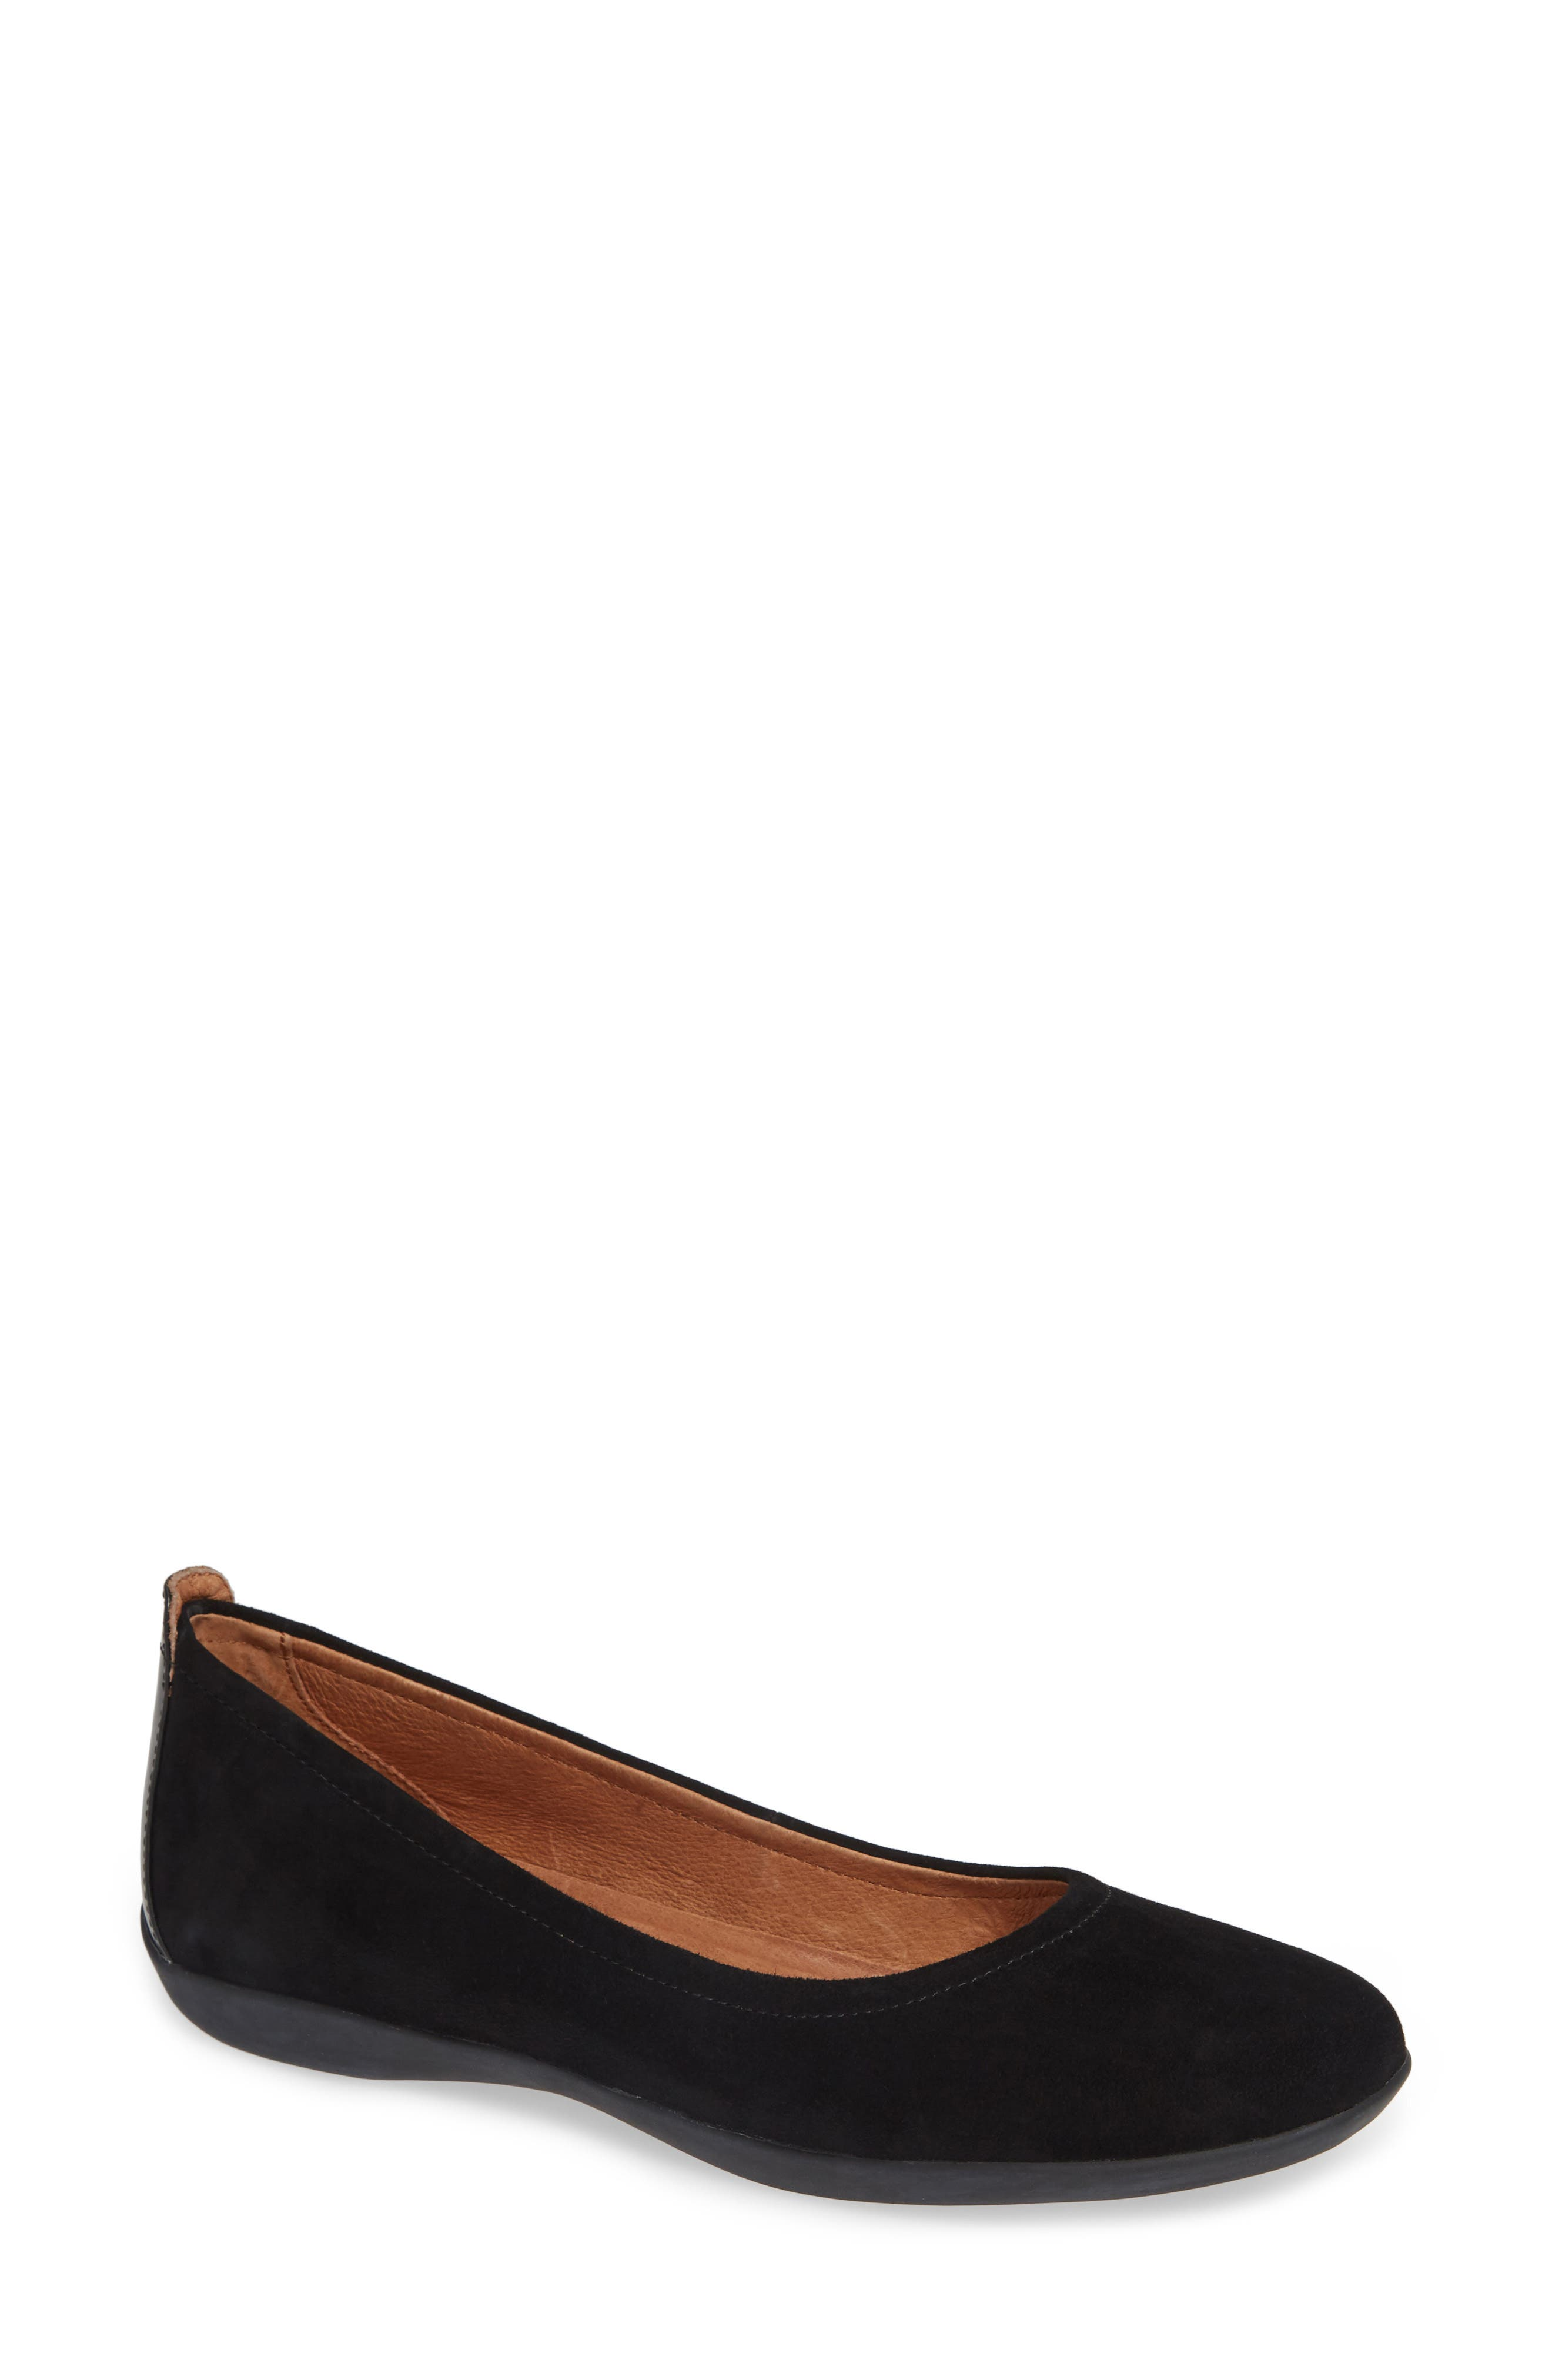 Lily Flat,                             Main thumbnail 1, color,                             BLACK SUEDE